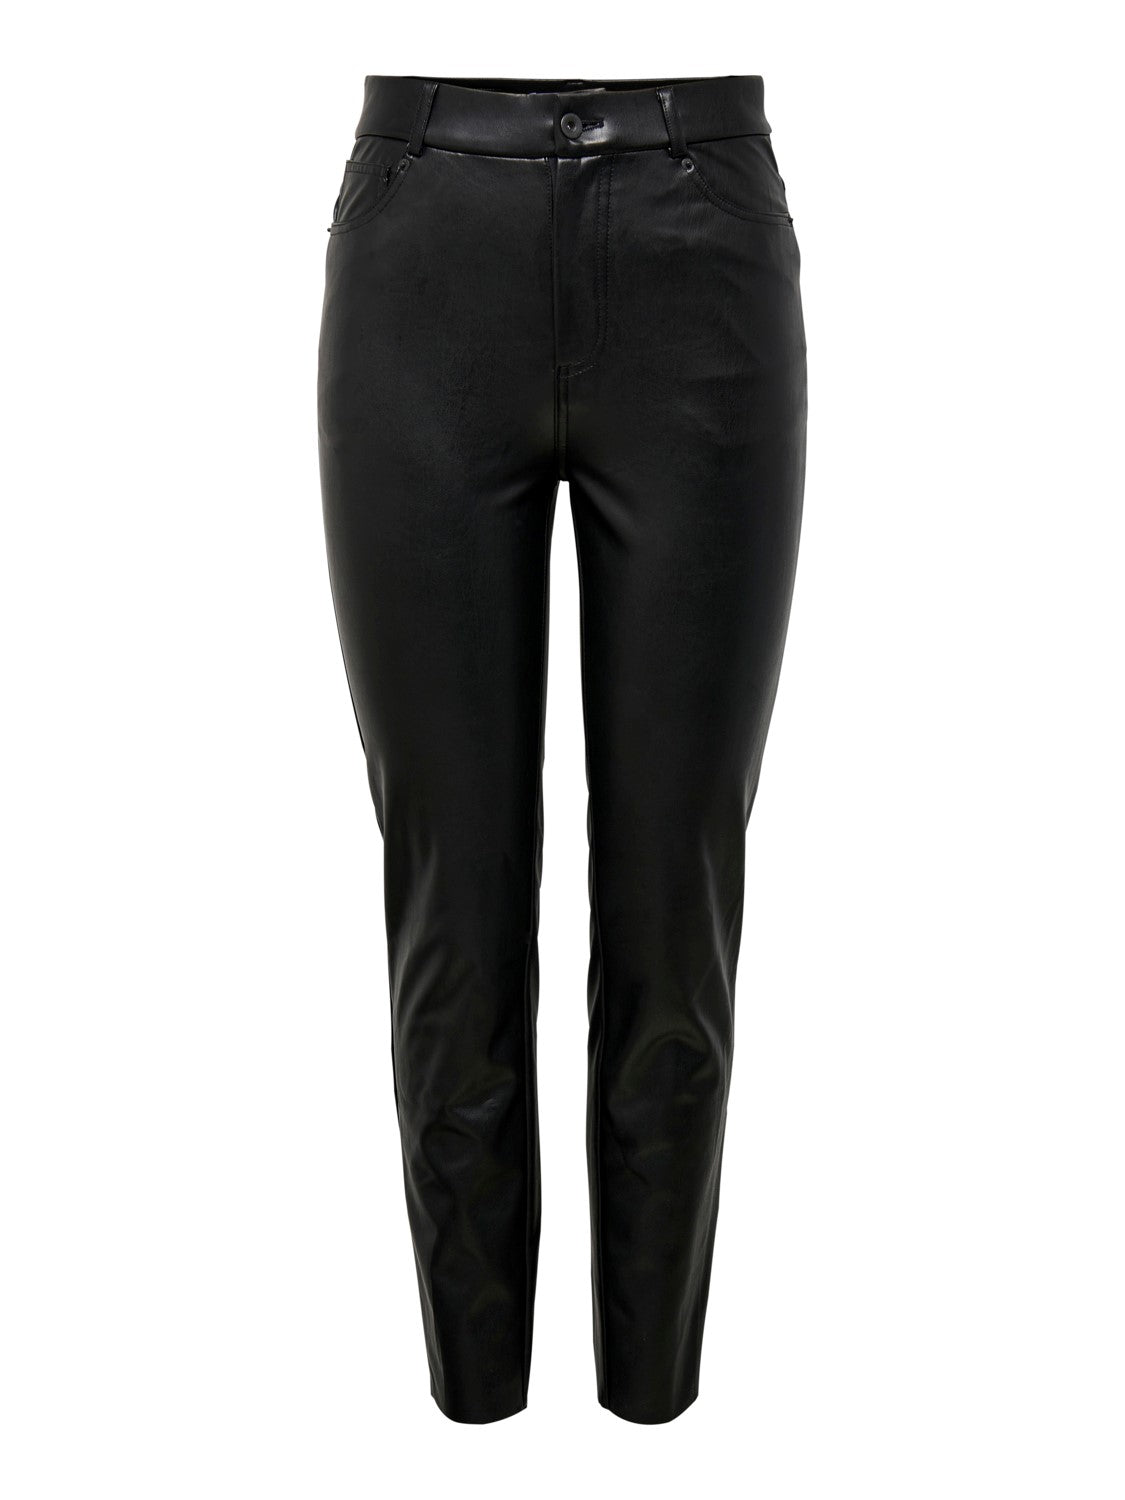 EMILY HIGH WAIST ANKEL FUAX LEATHER